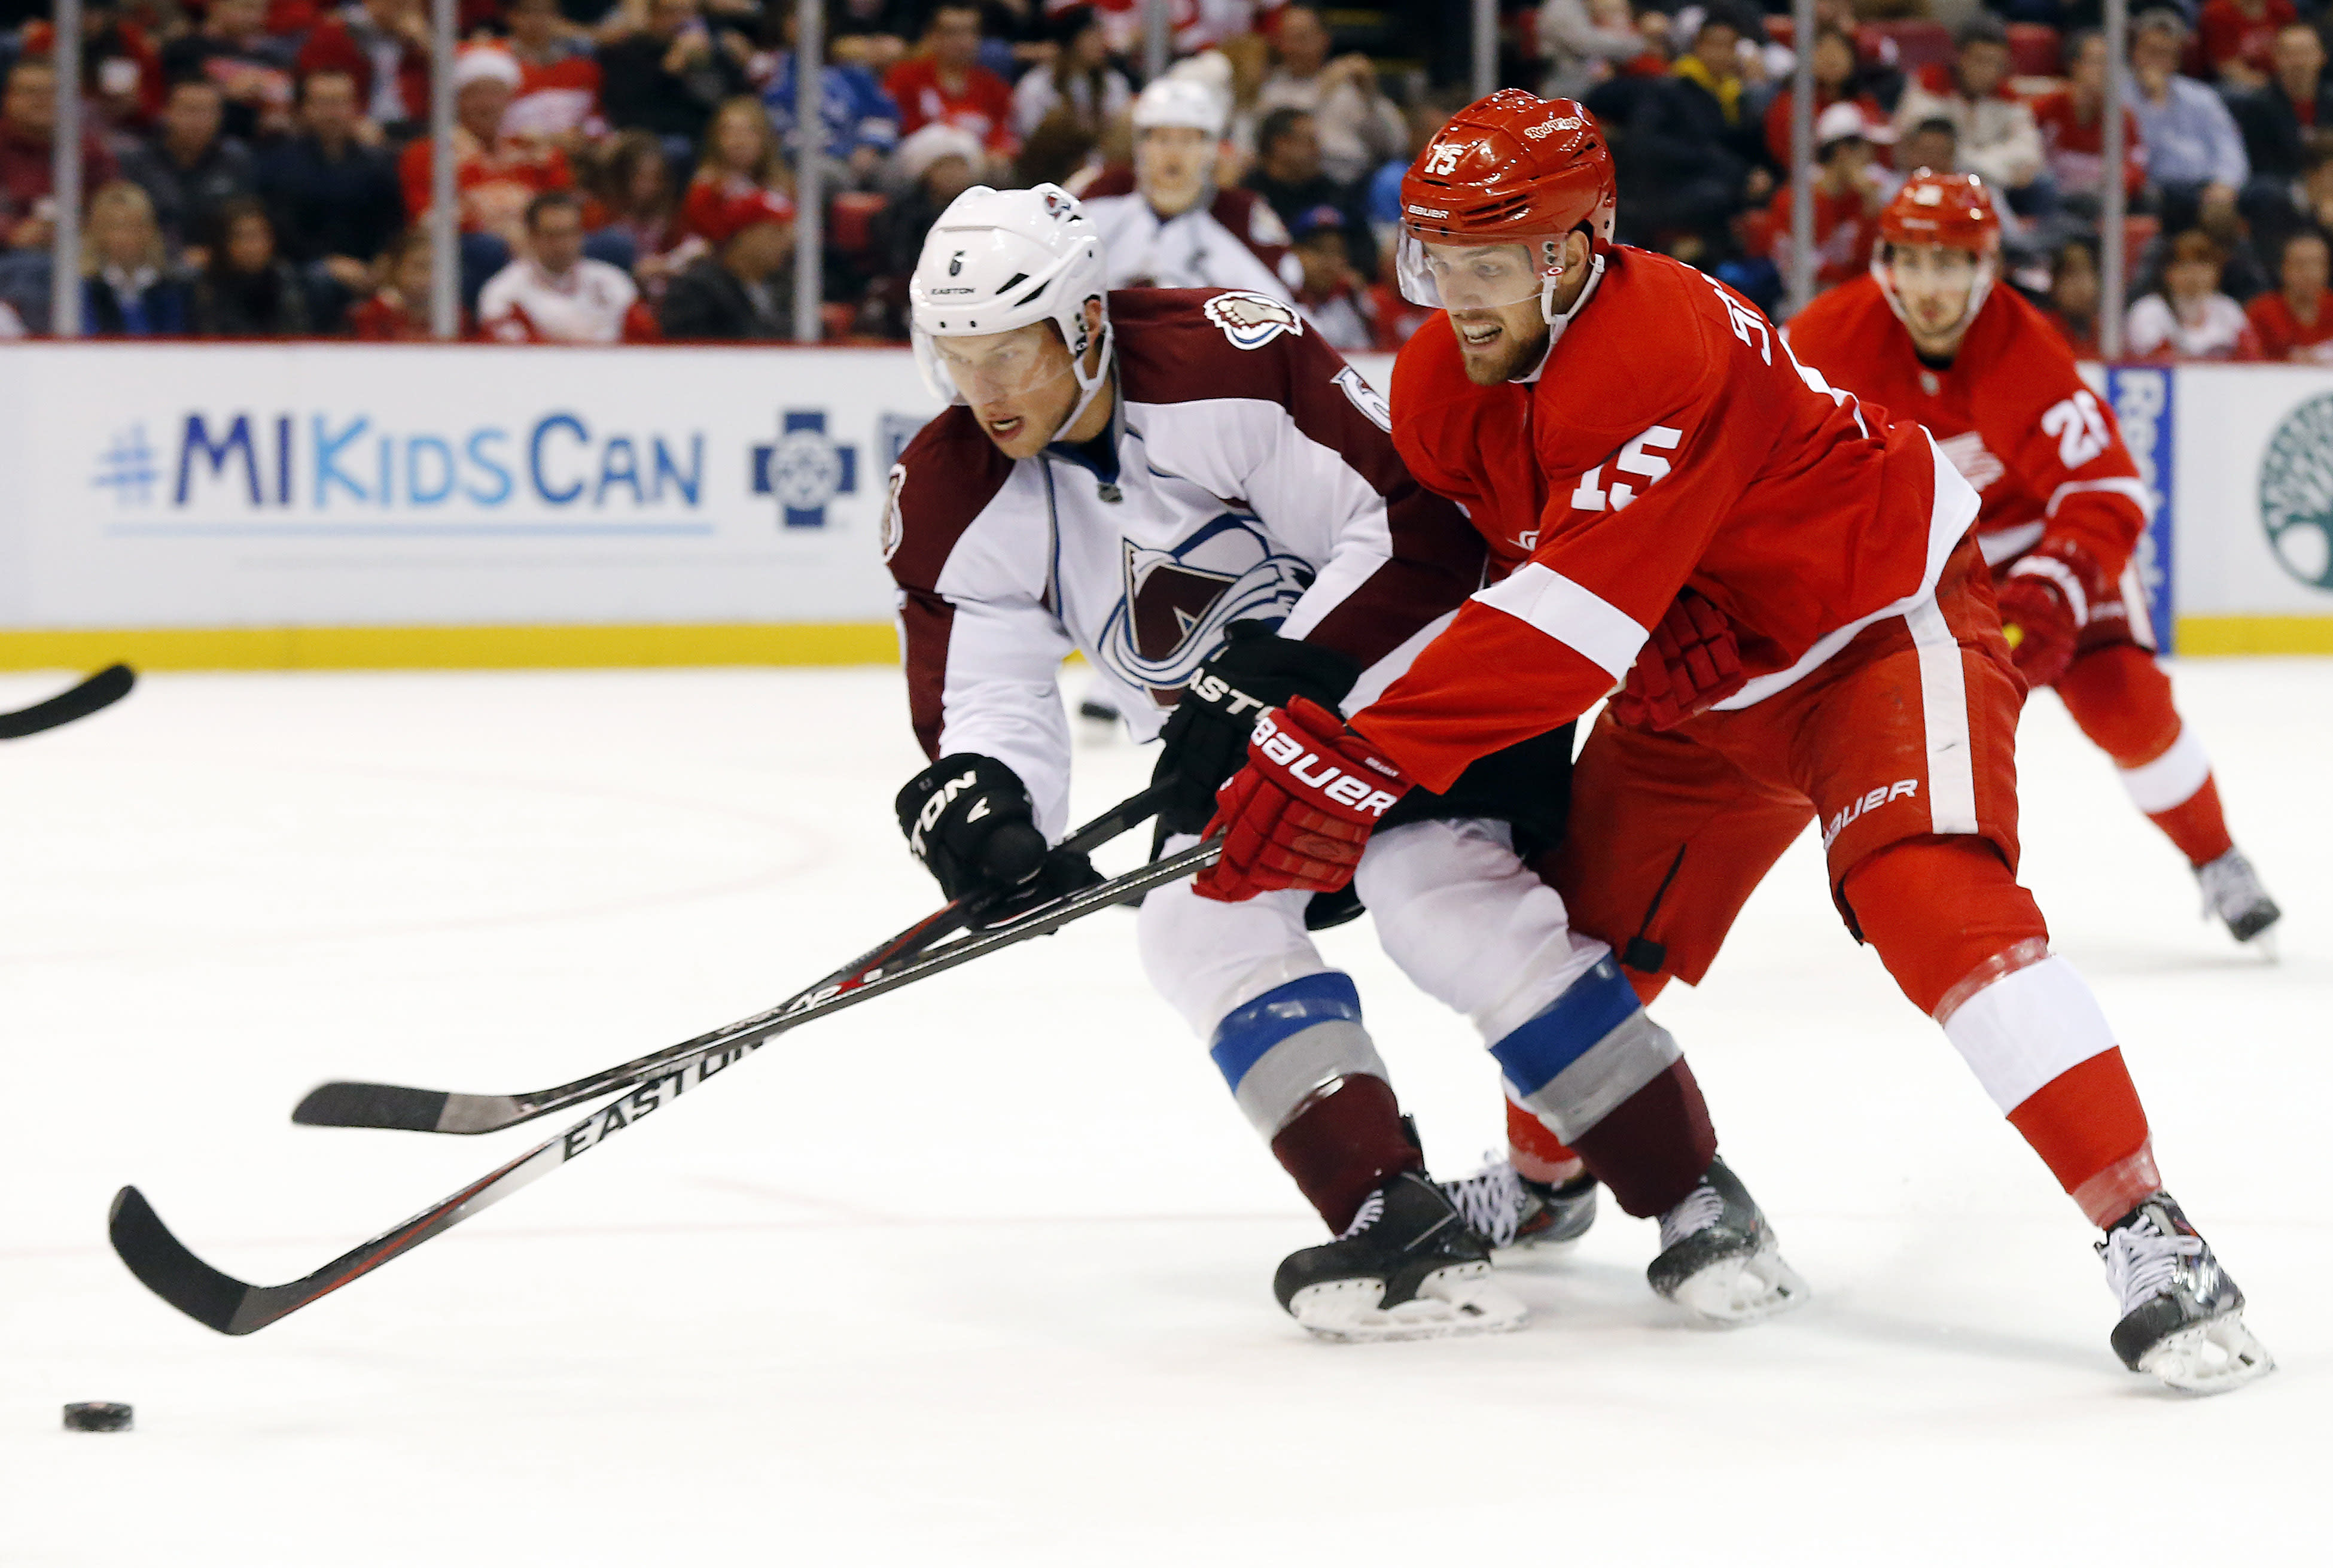 Iginla helps Avalanche beat Red Wings 2-1 in shootout